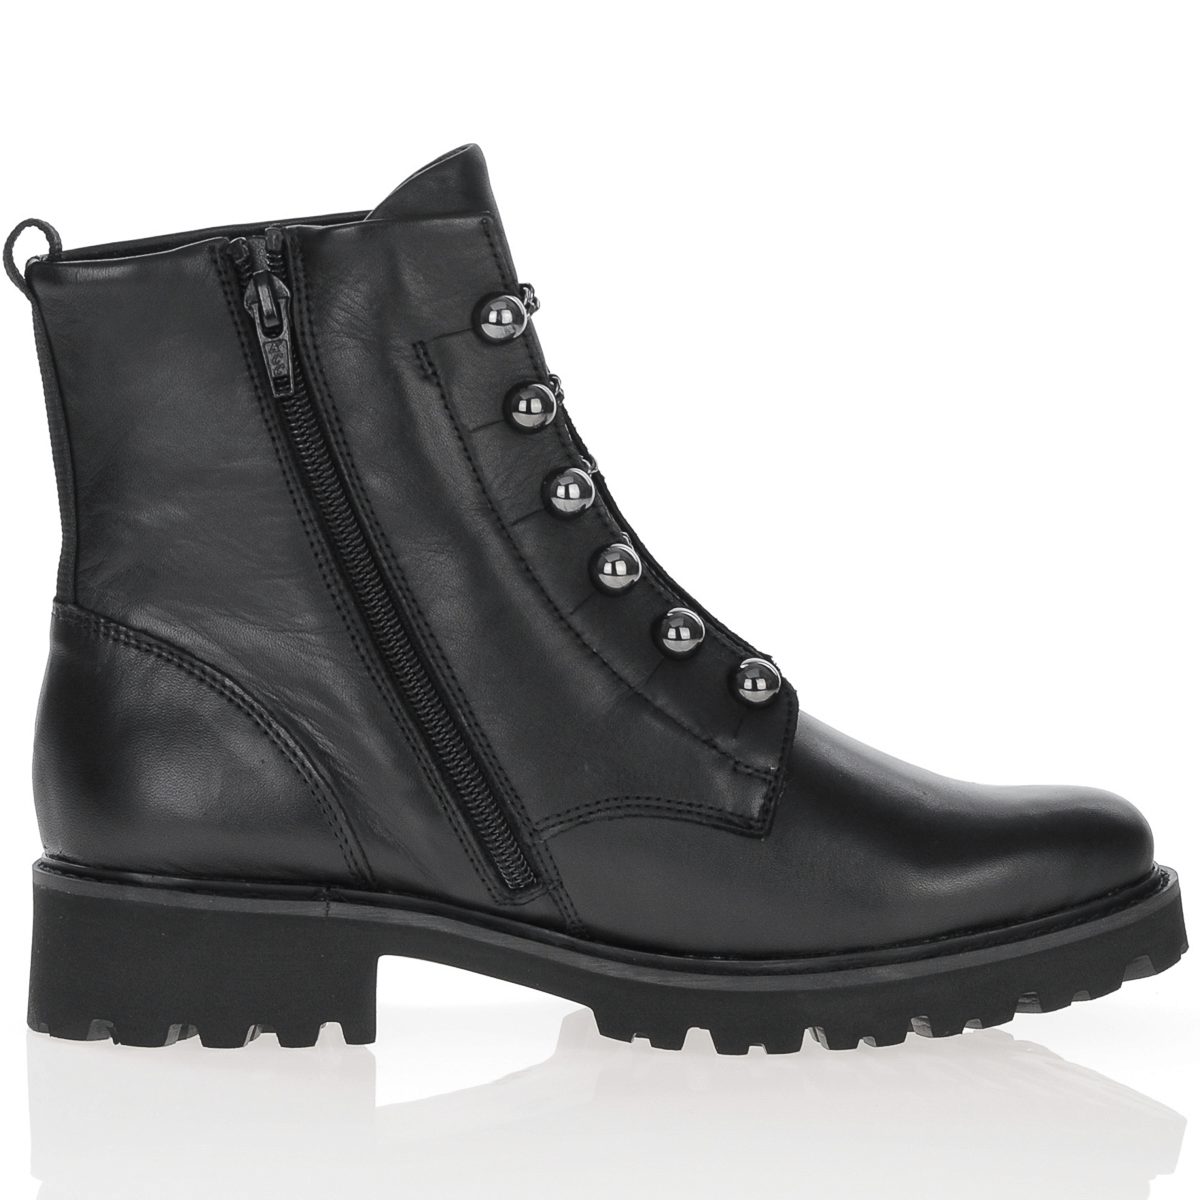 D8670-01 Remonte black leather boot